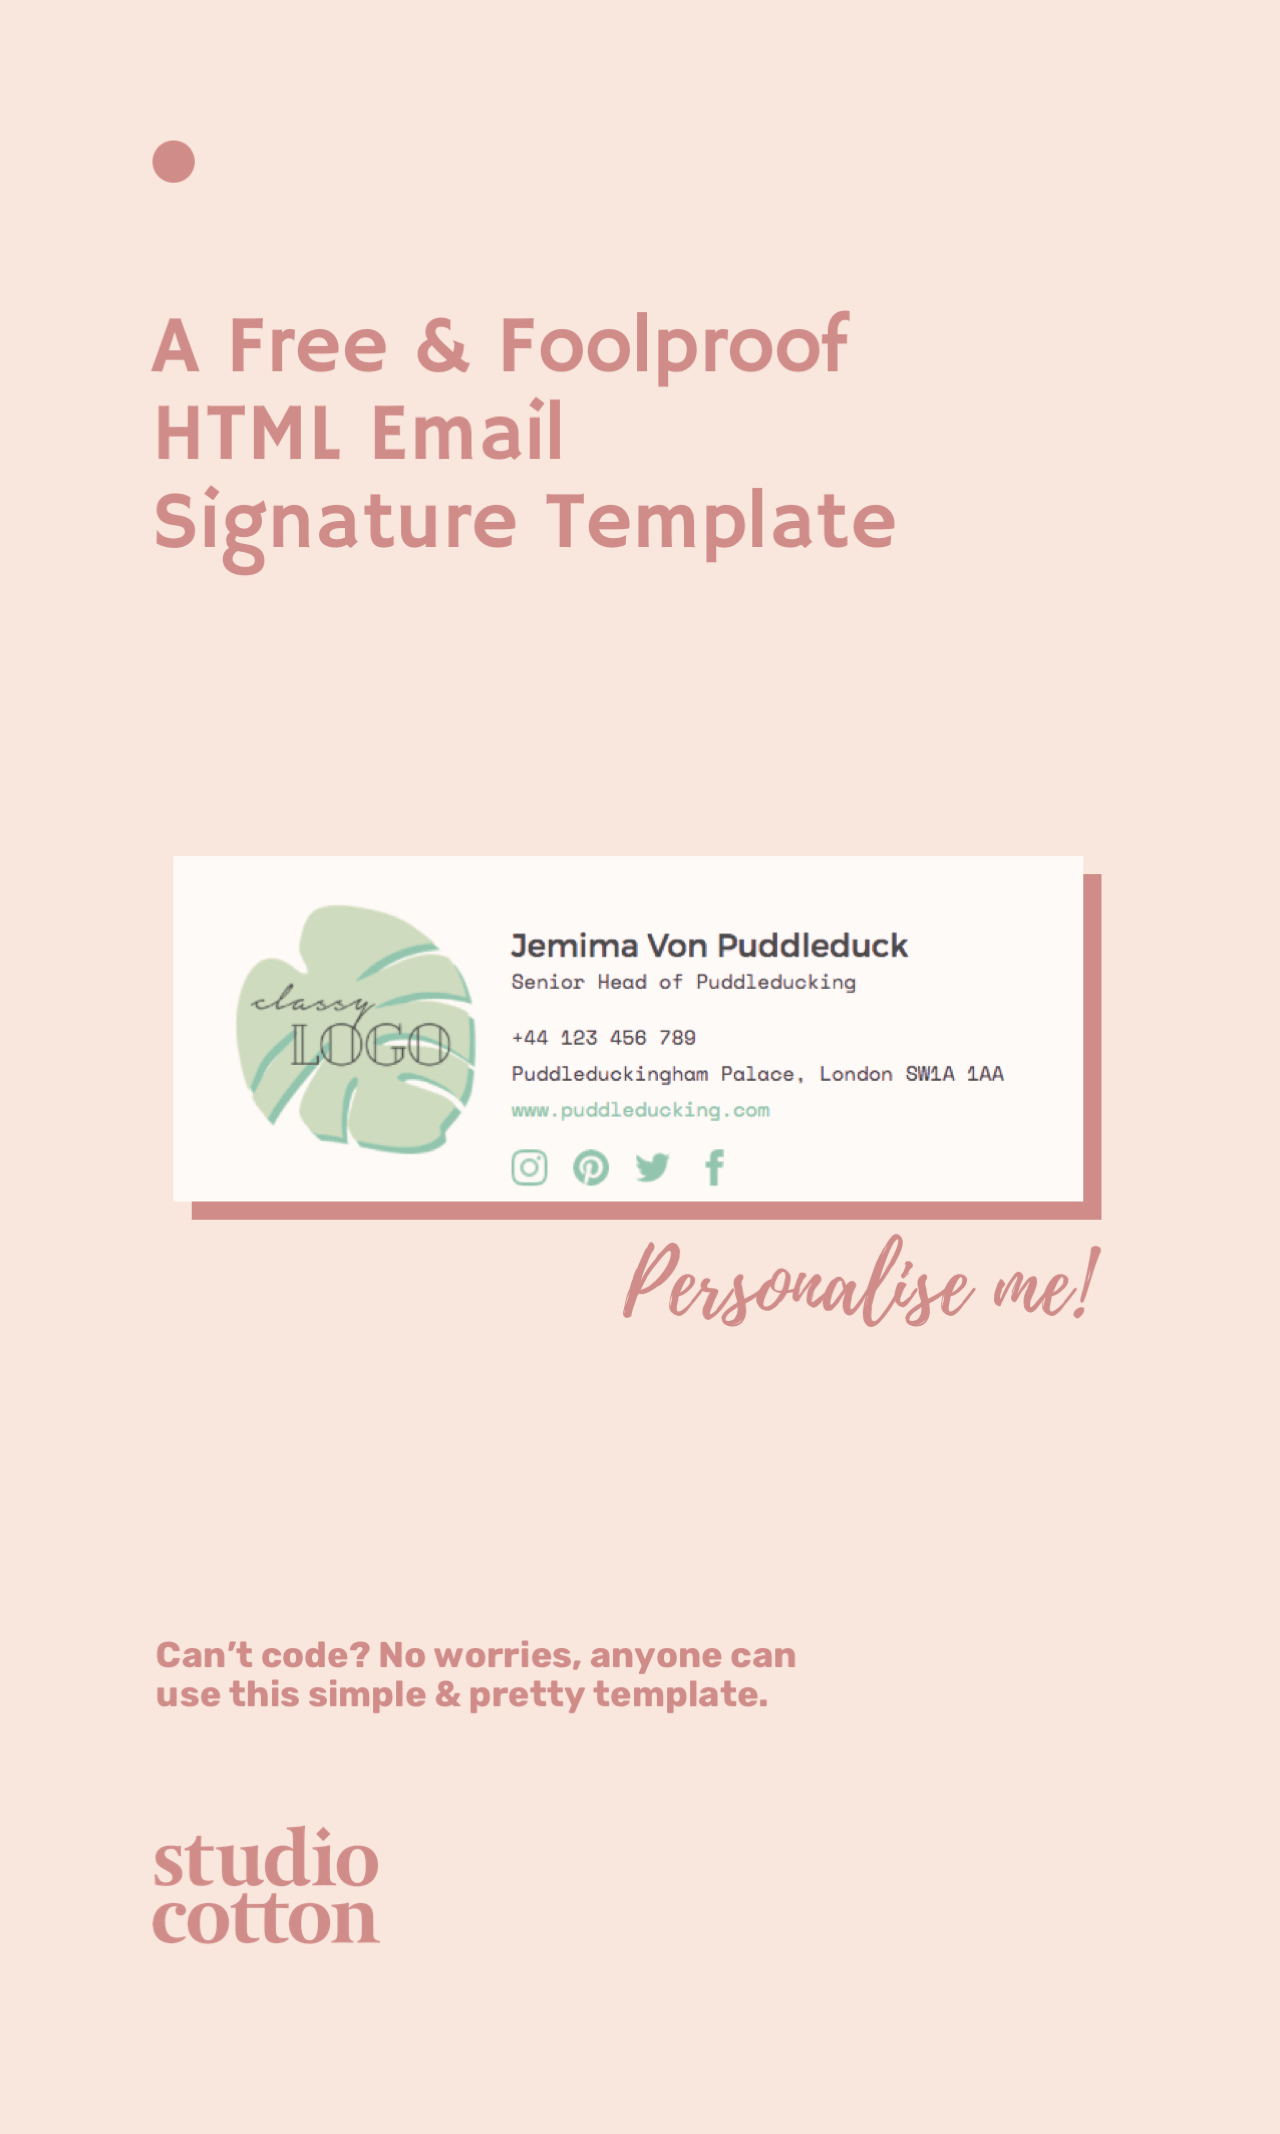 A Free & Foolproof HTML Email Signature Template • Brand